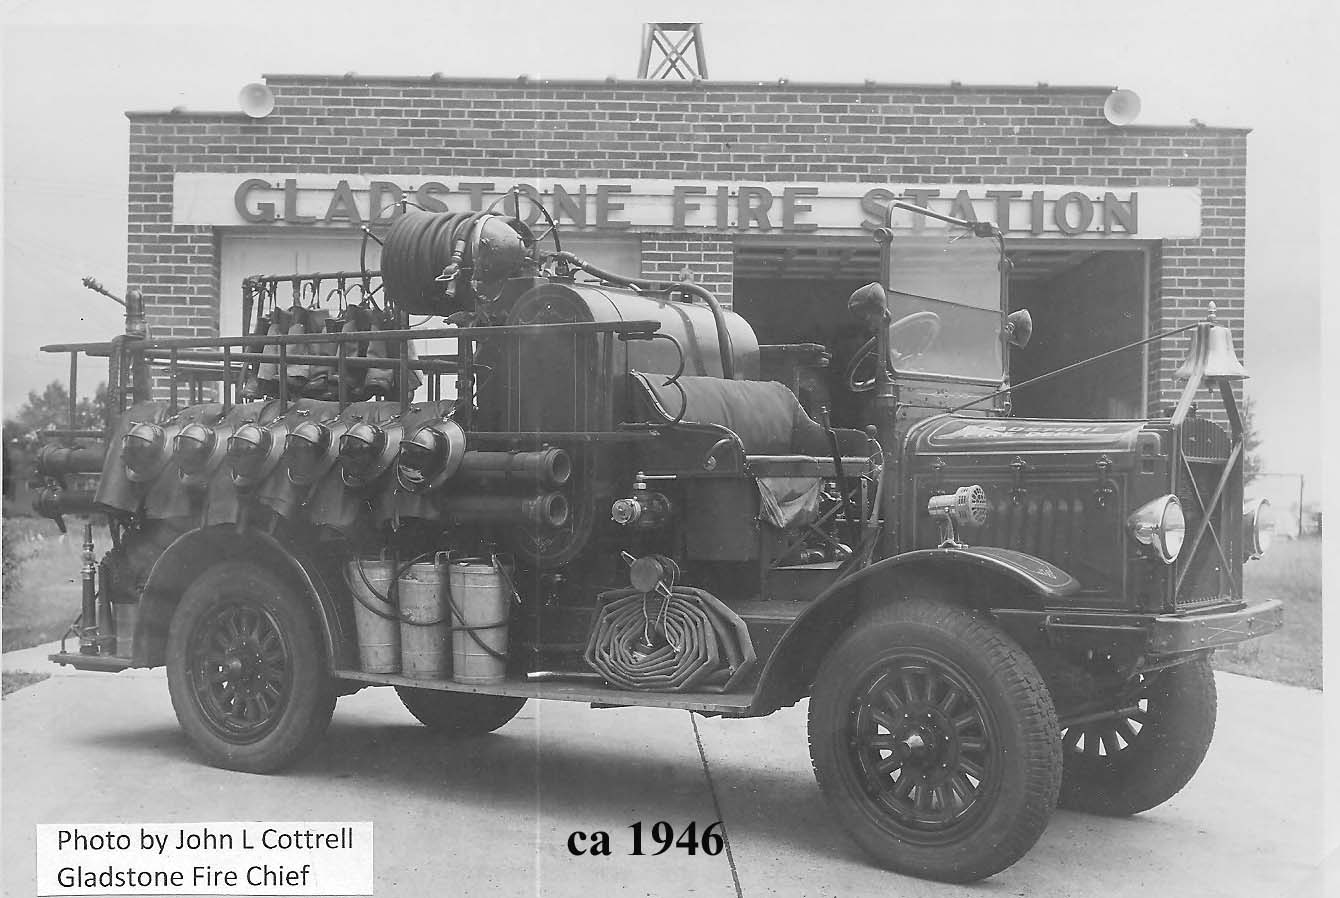 Gladstone Volunteer Fire Station